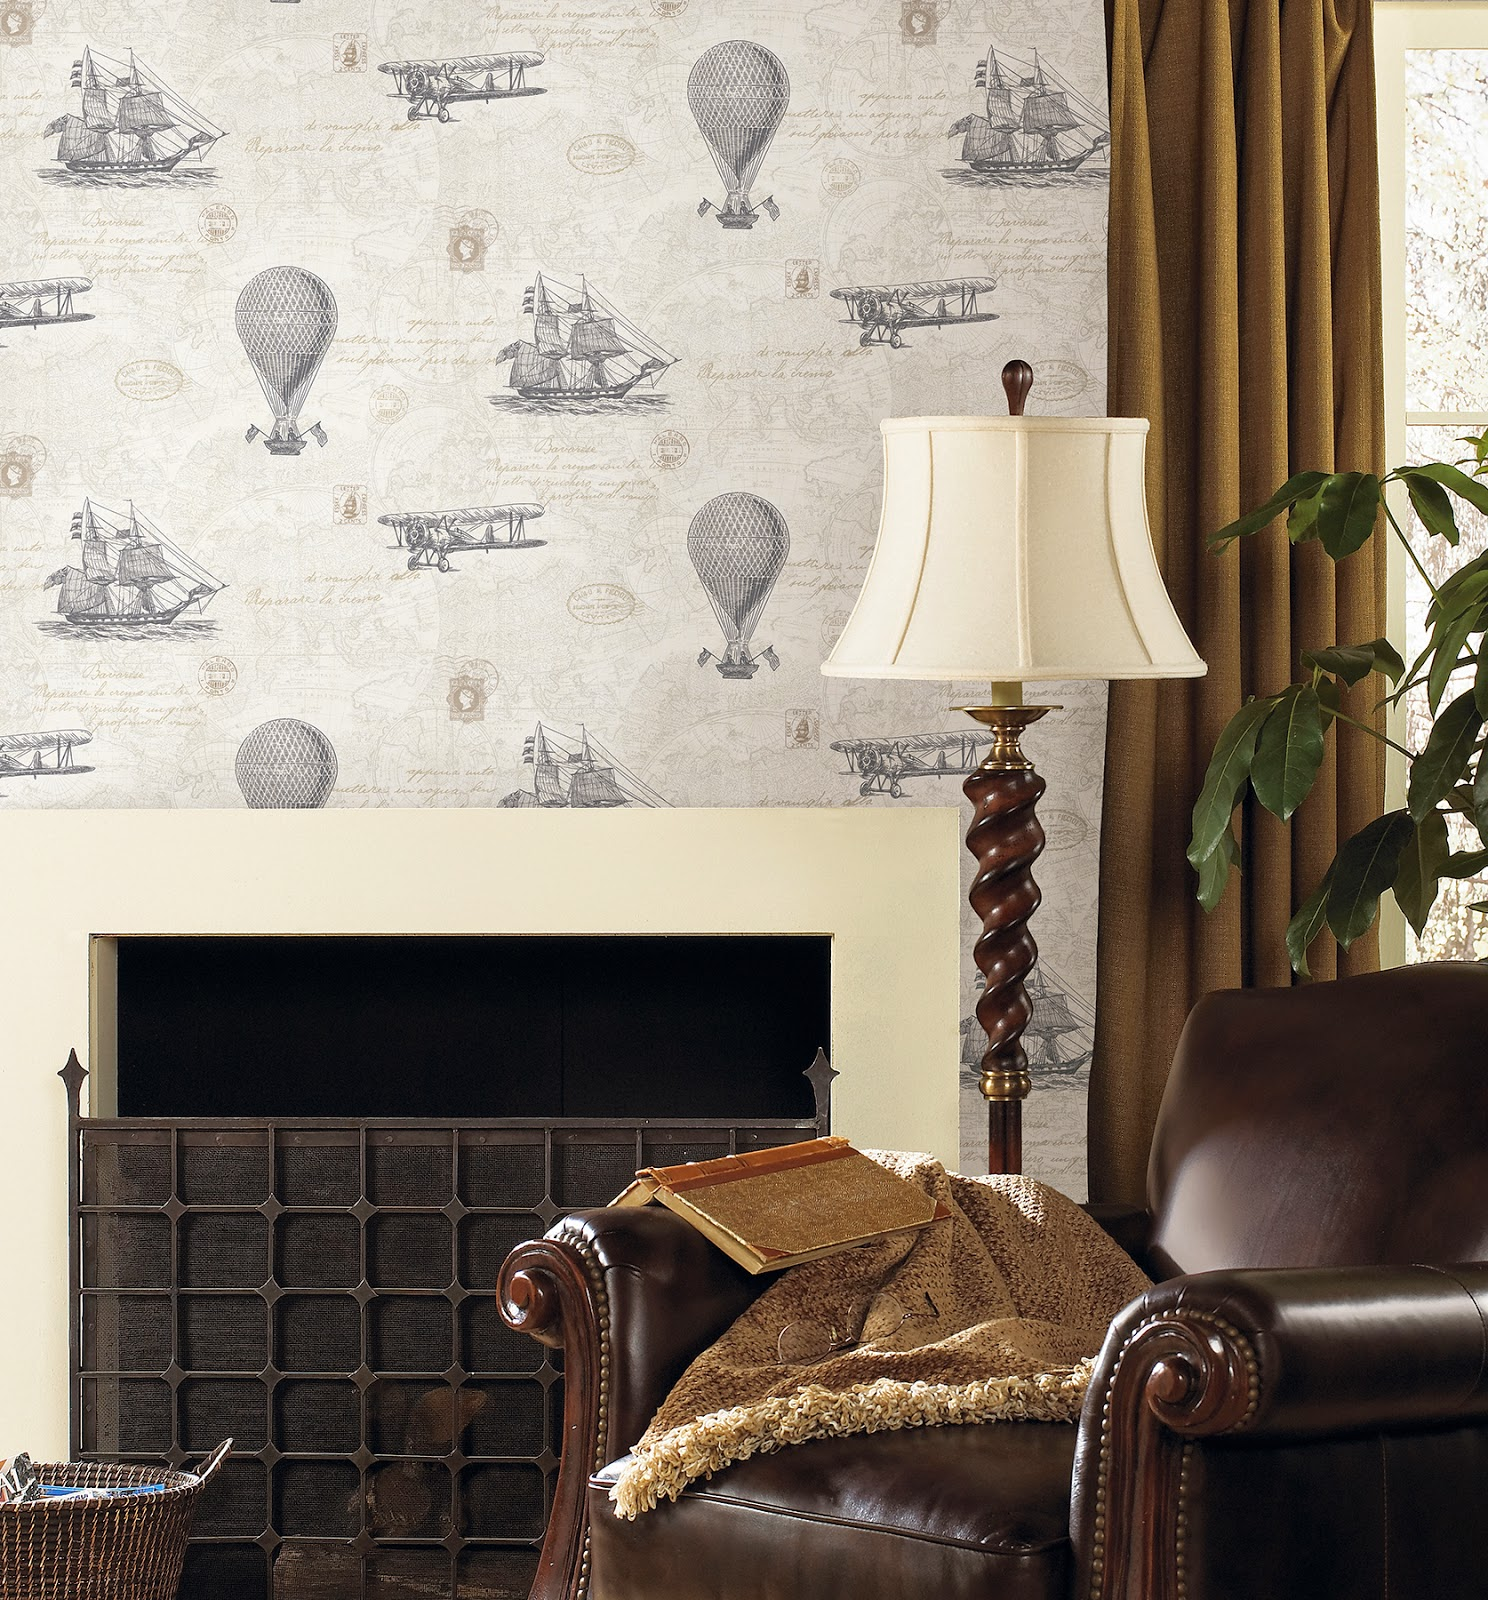 https://www.wallcoveringsforless.com/shoppingcart/prodlist1.CFM?page=_prod_detail.cfm&product_id=45138&startrow=49&search=oxford&pagereturn=_search.cfm